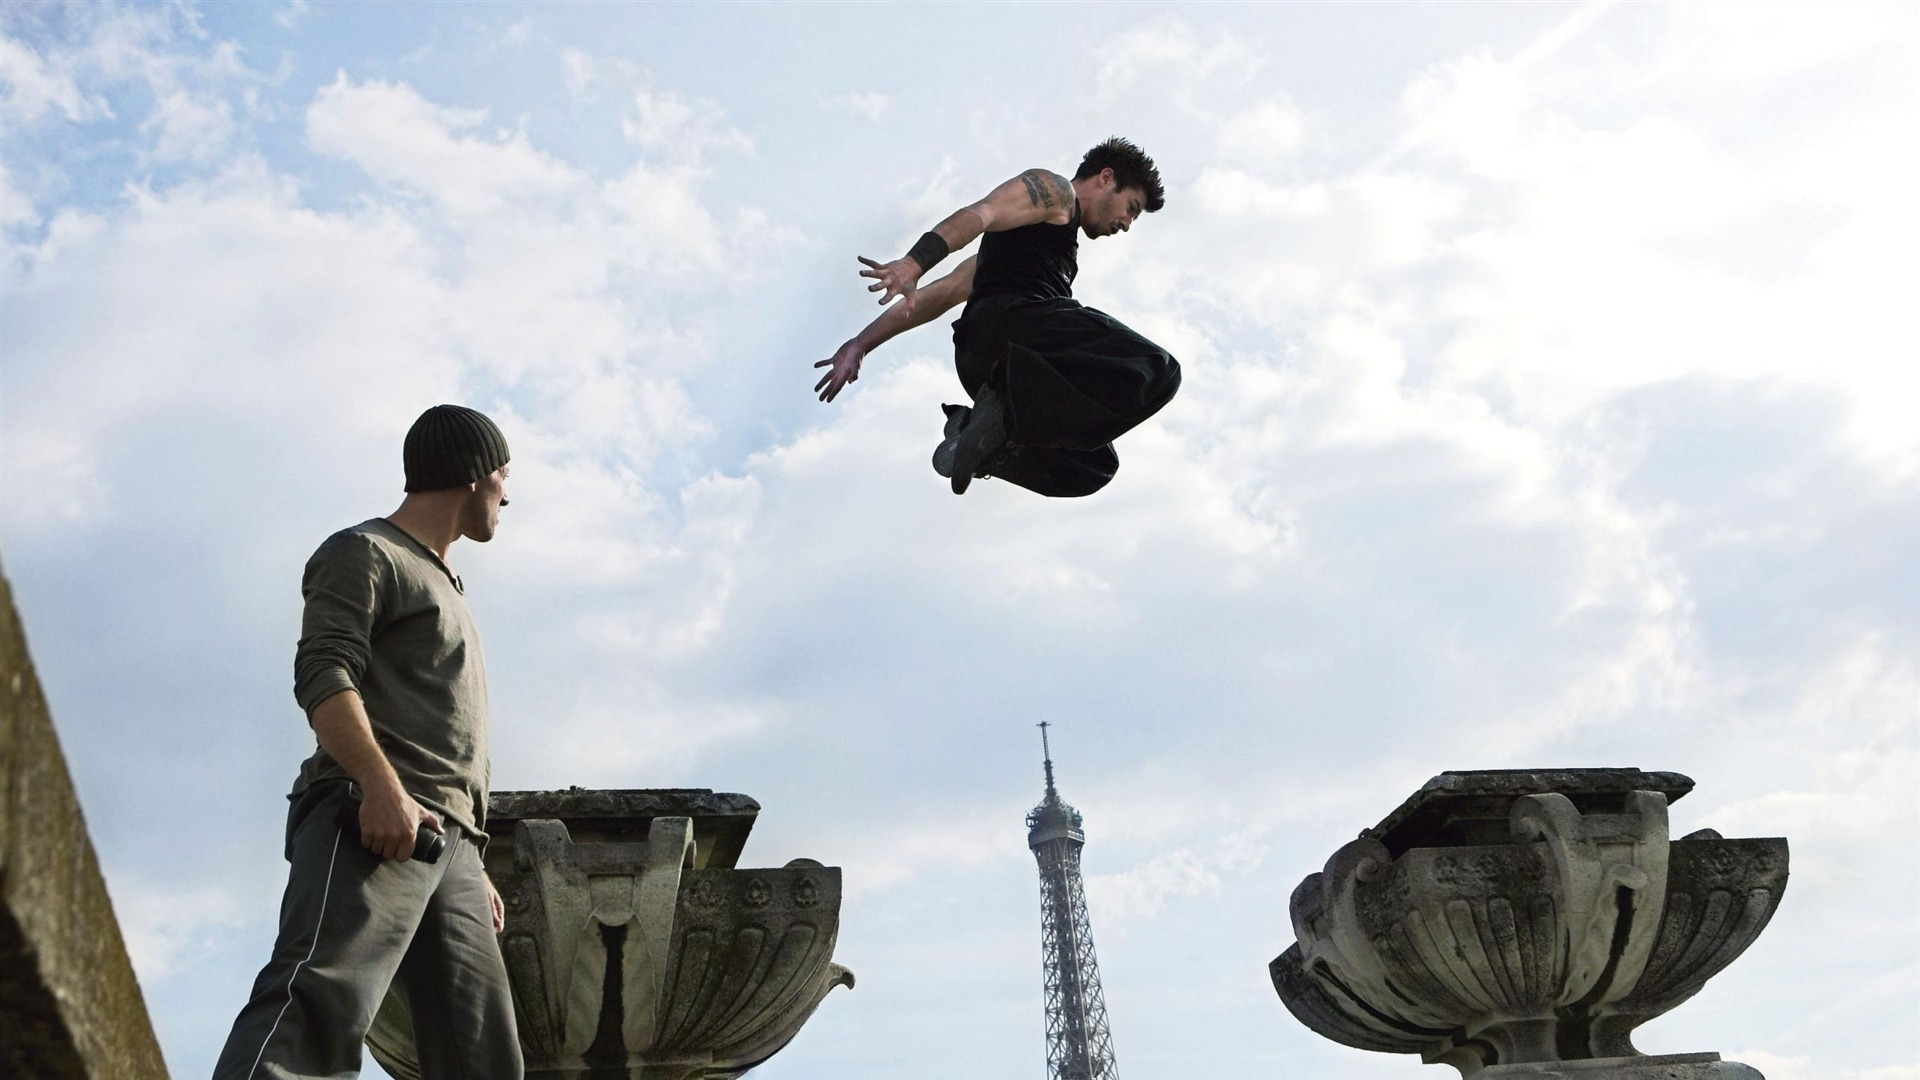 Parkour Wallpaper 722314 1920x1080